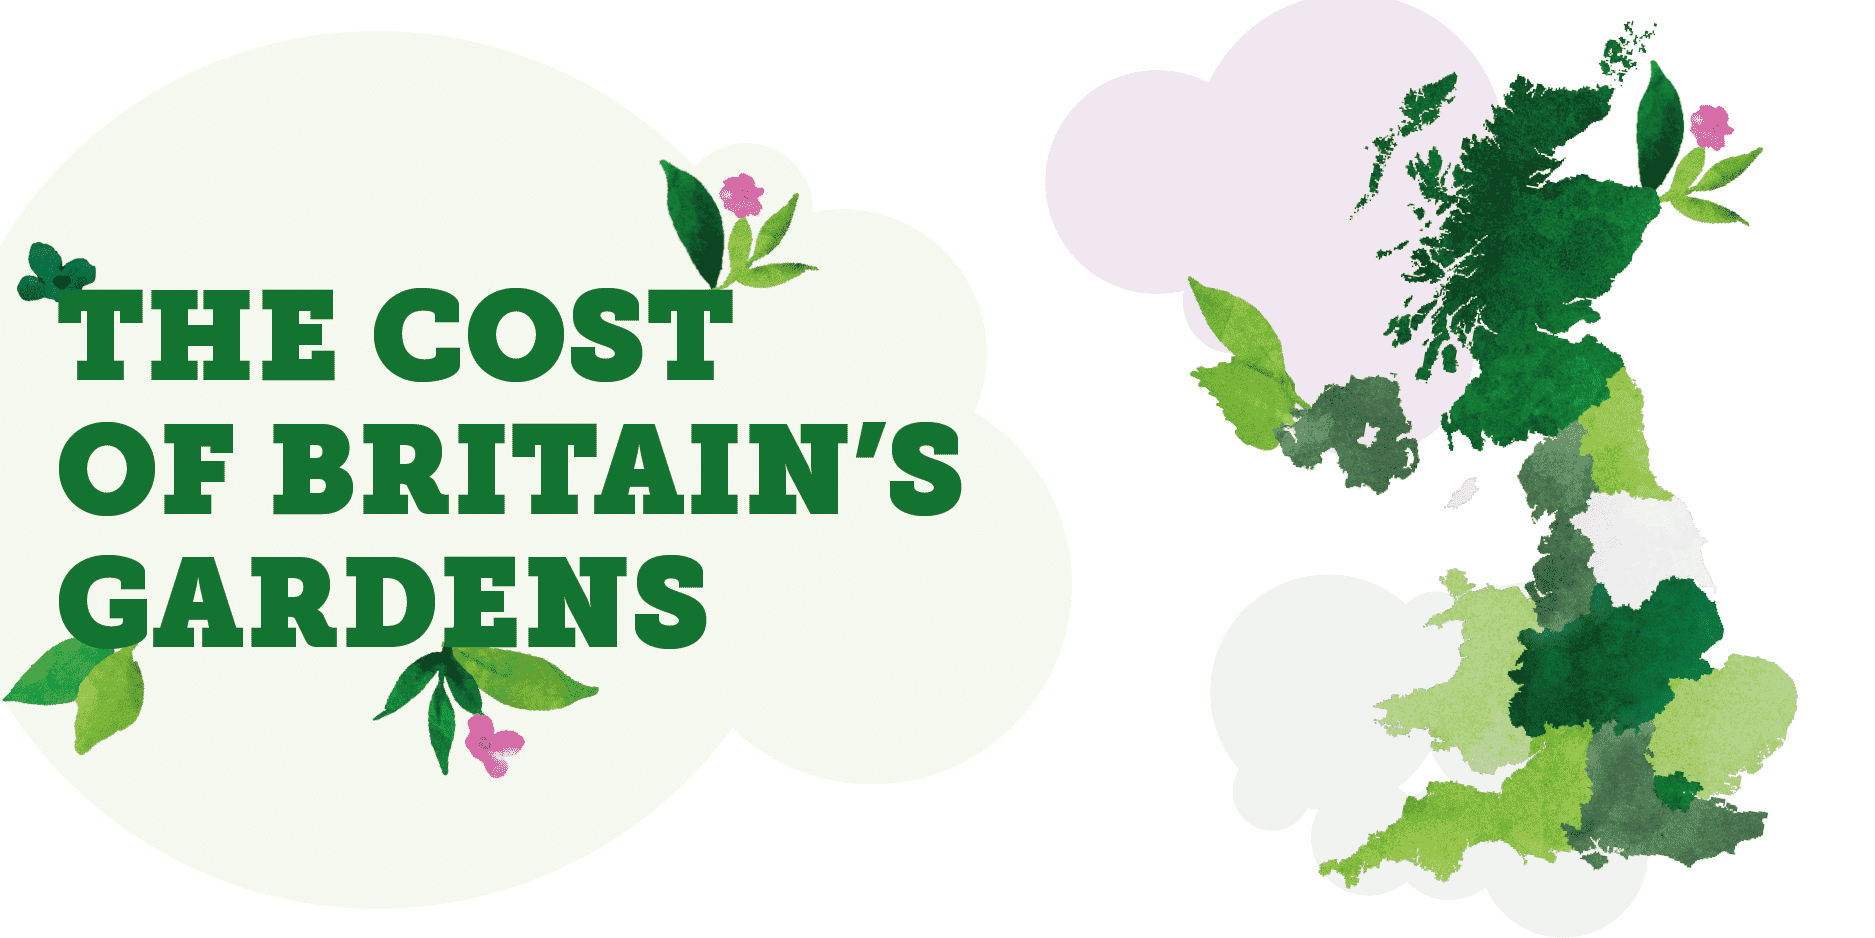 The Cost of Britain's Gardens